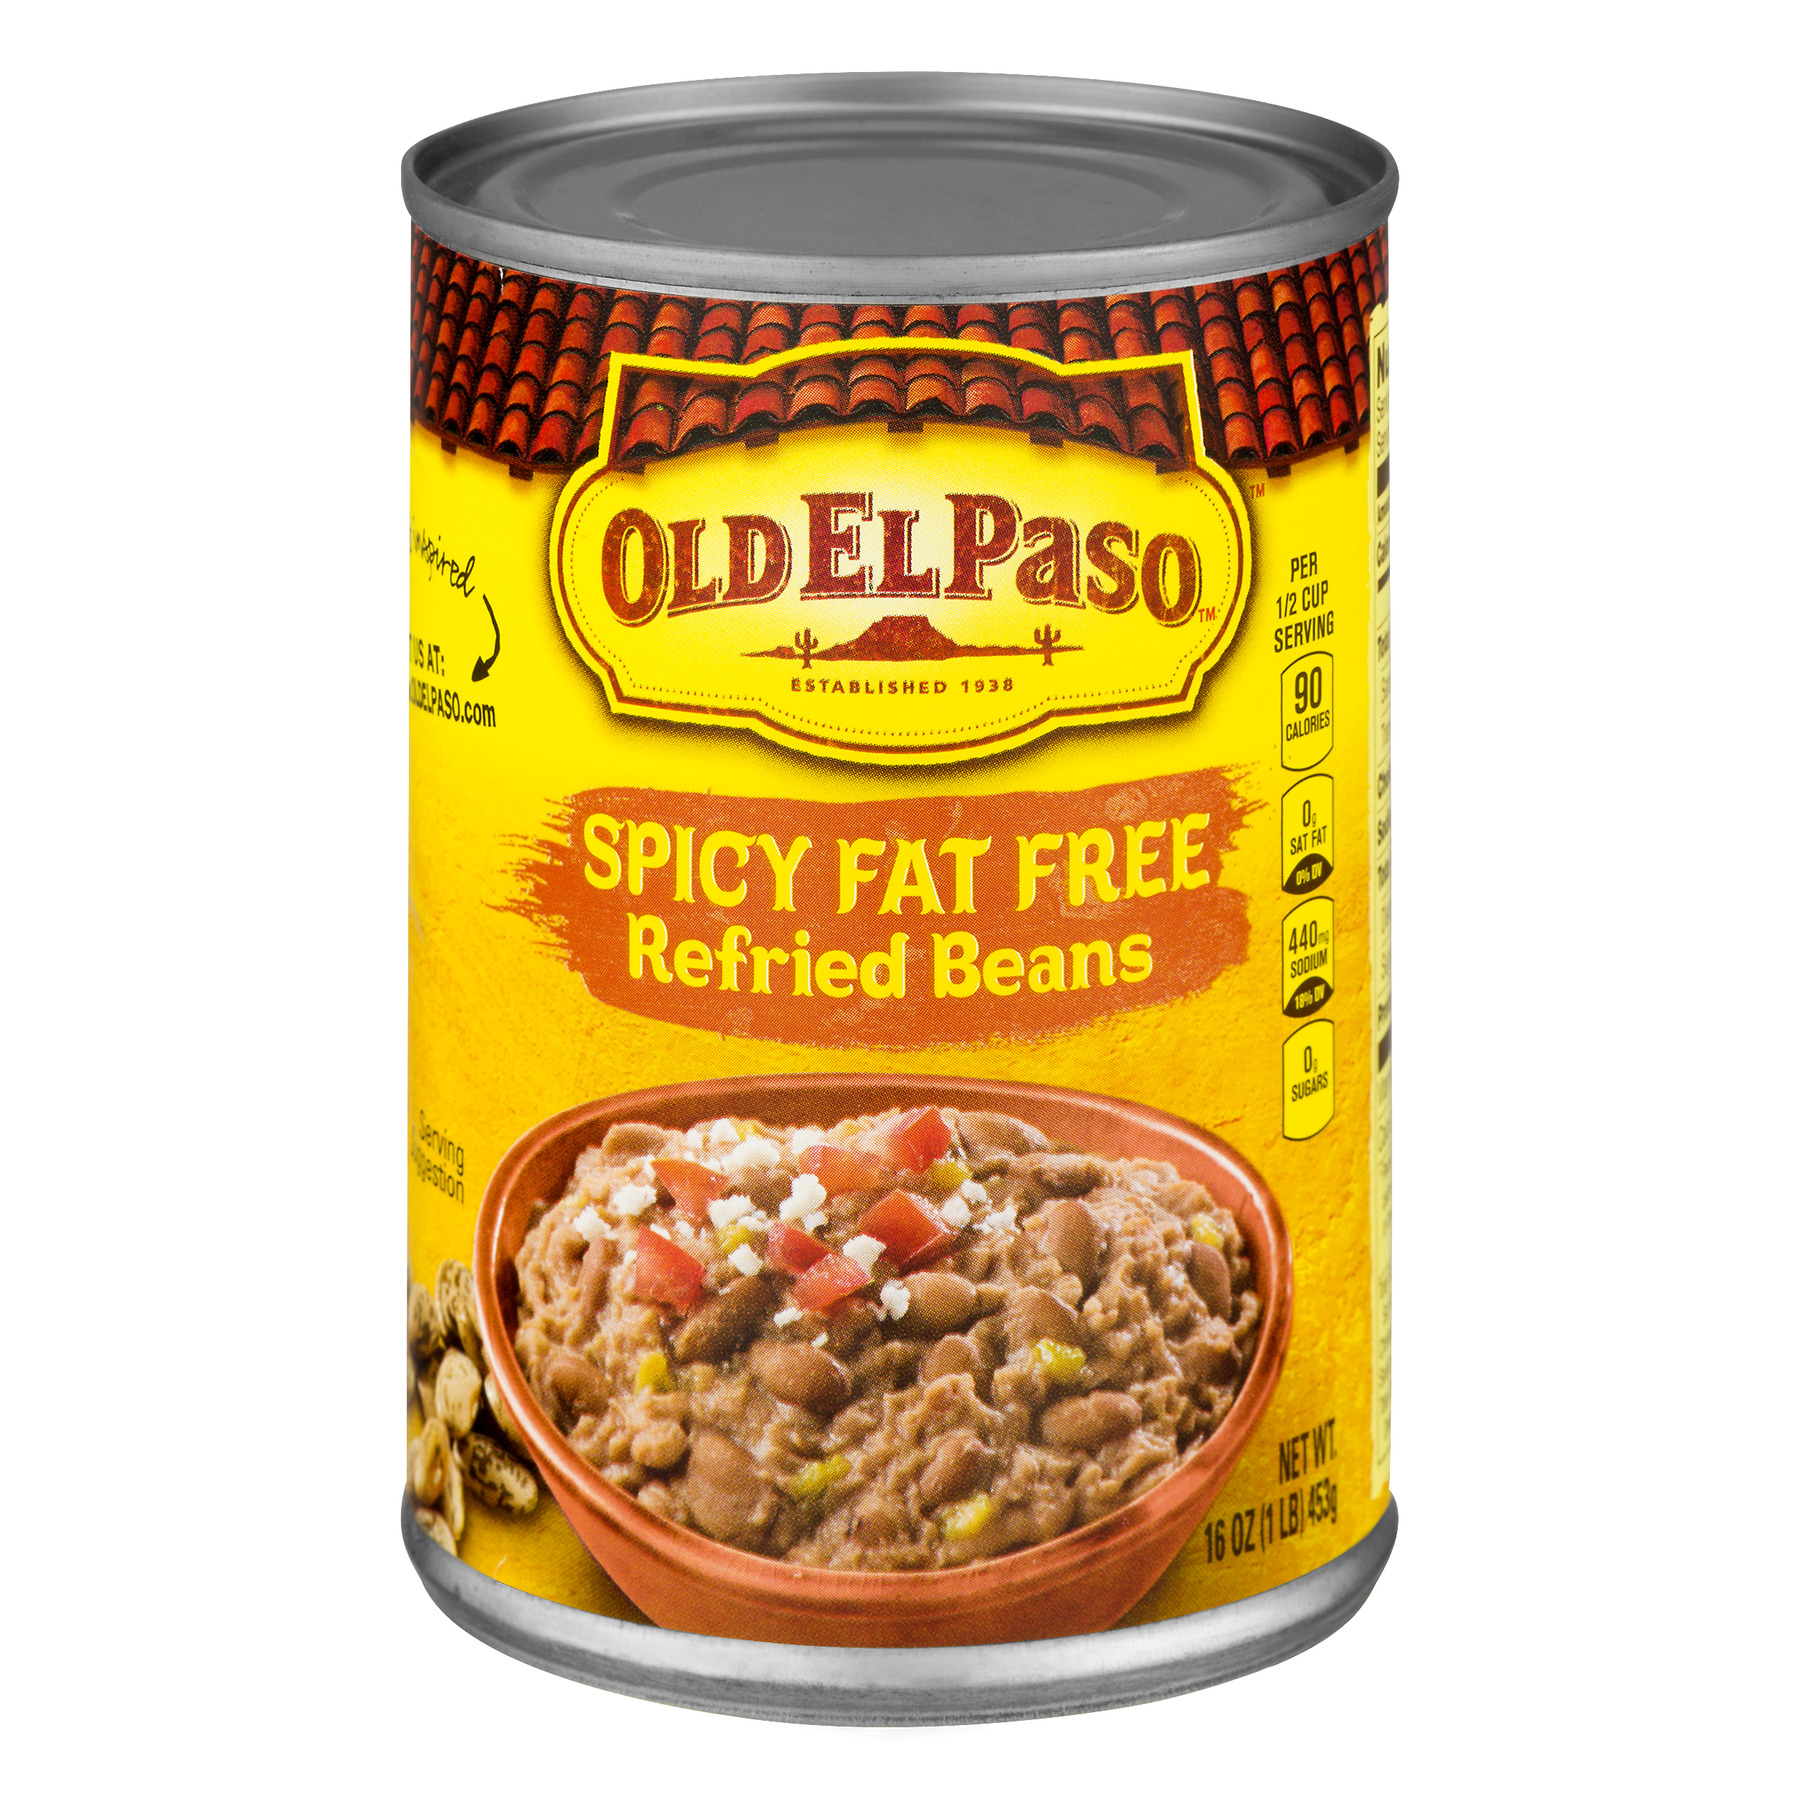 Old El Paso™ Spicy Fat Free Refried Beans 16 oz Can